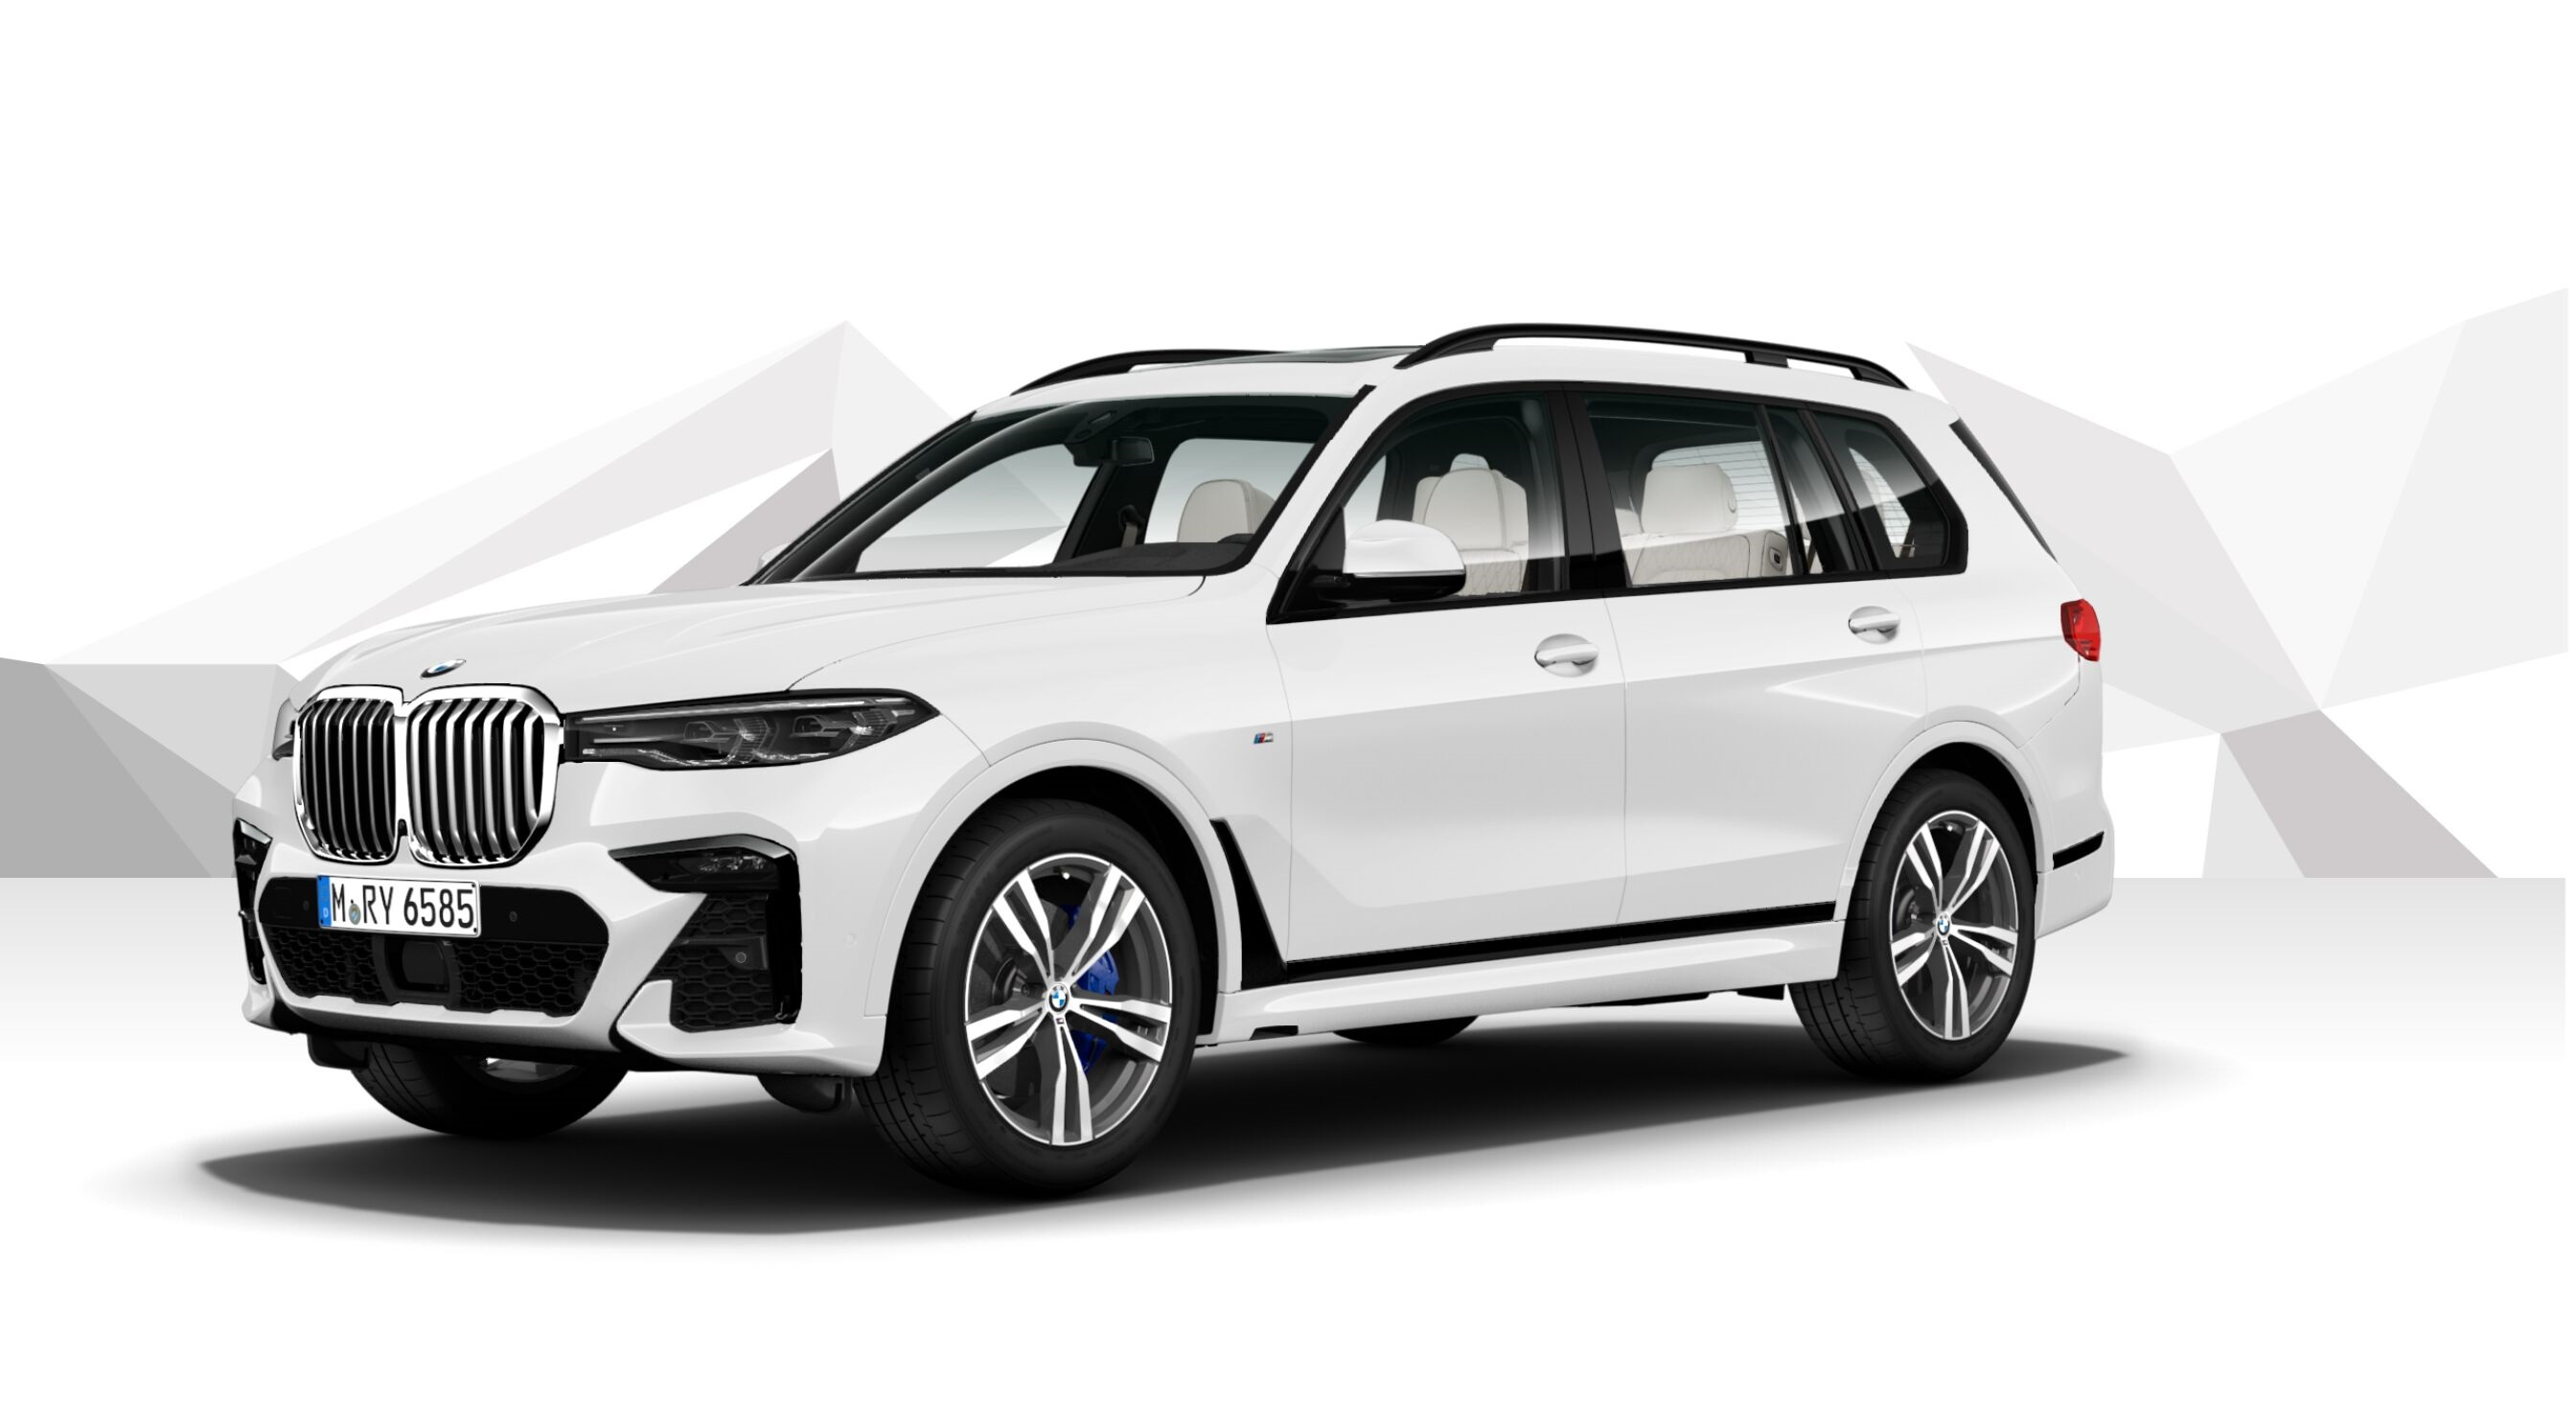 BMW BMW X7 xDrive30d M Sport (Including Optional Technology Pack)